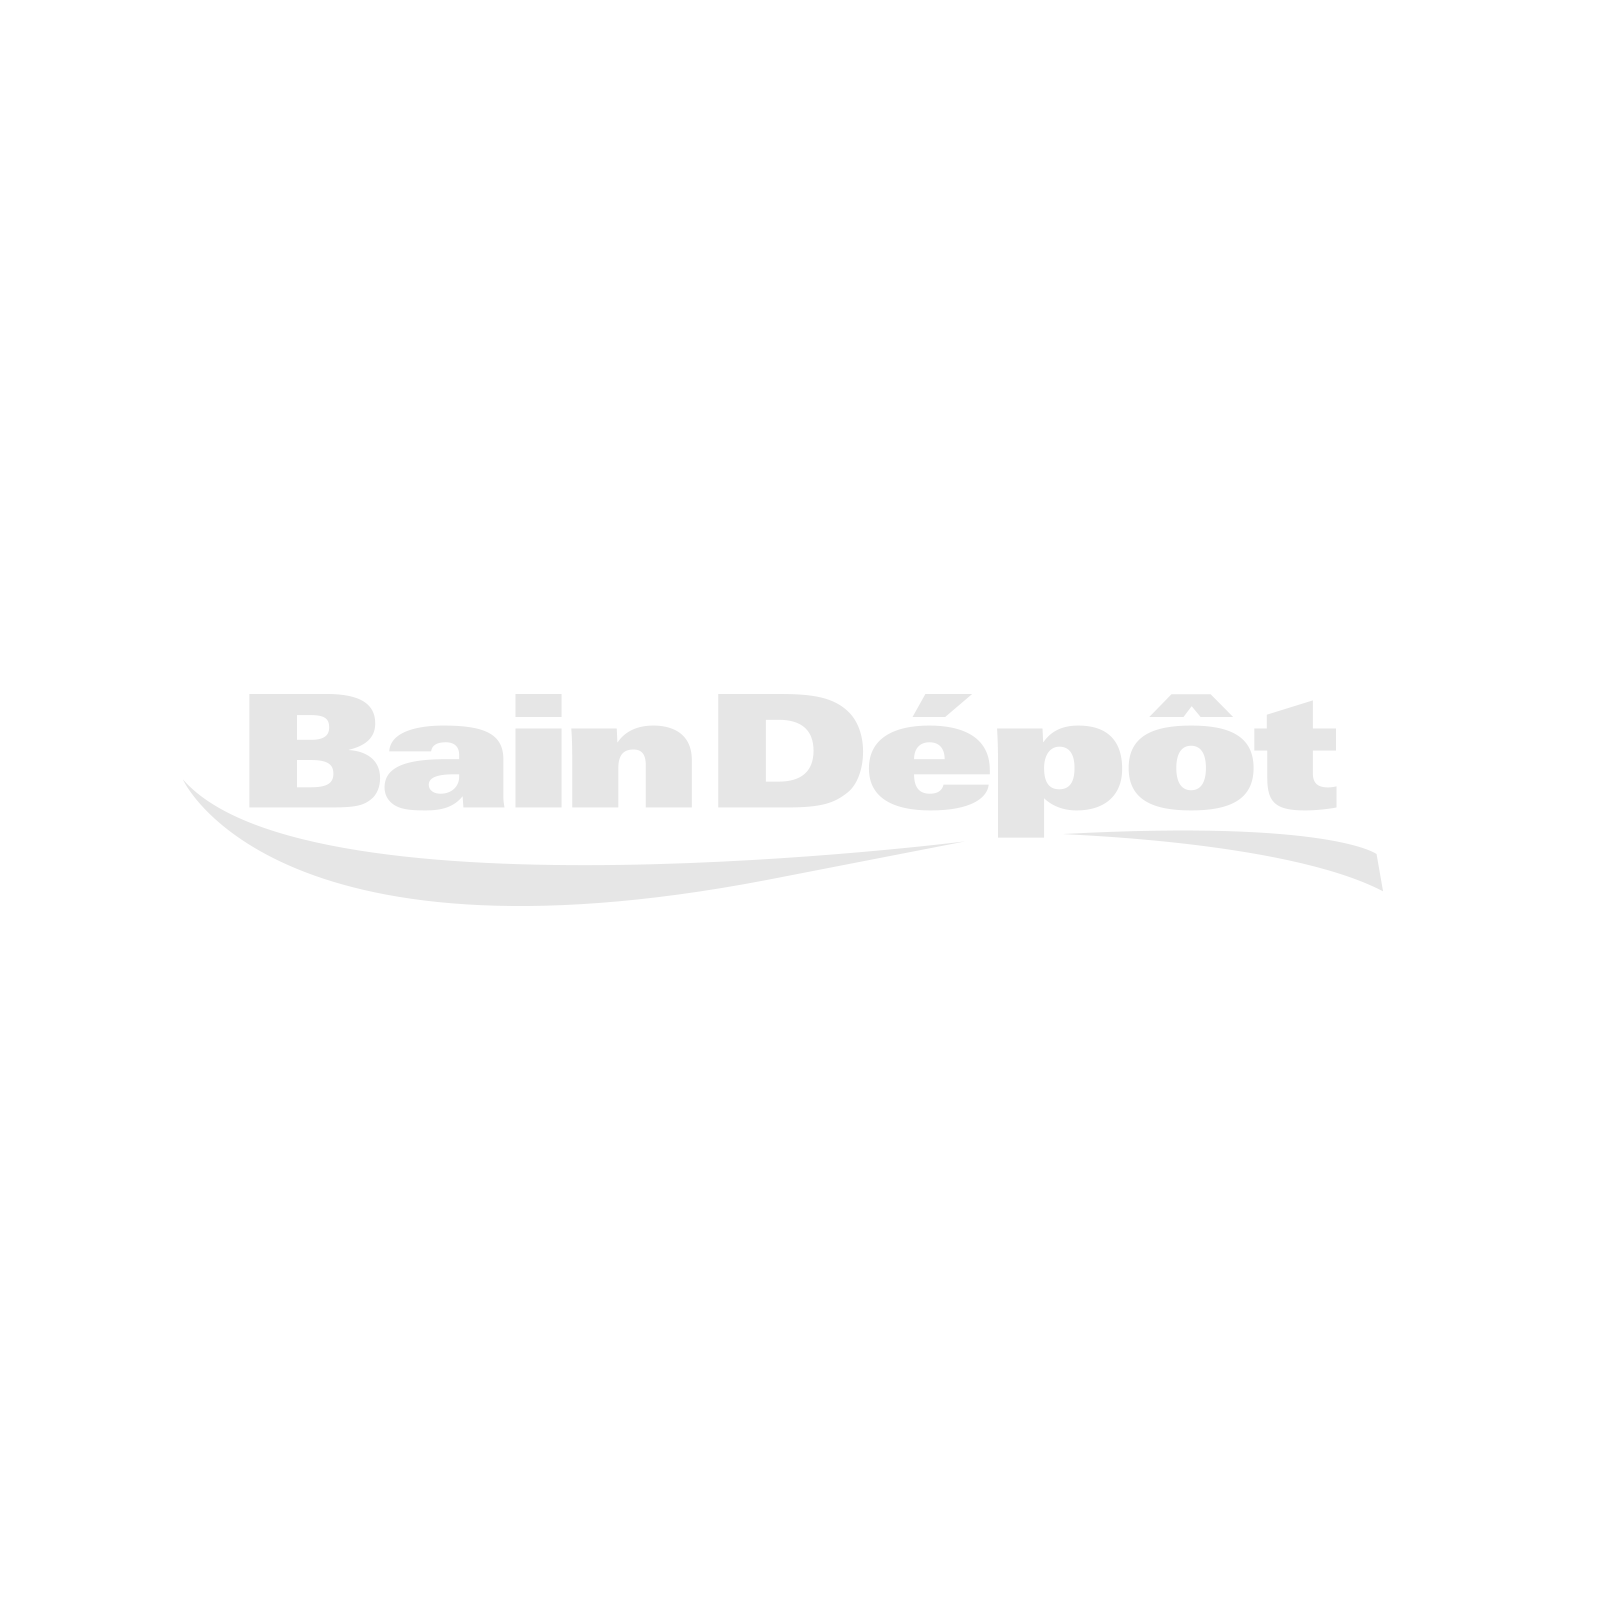 "69"" KANE built-in bathtub"